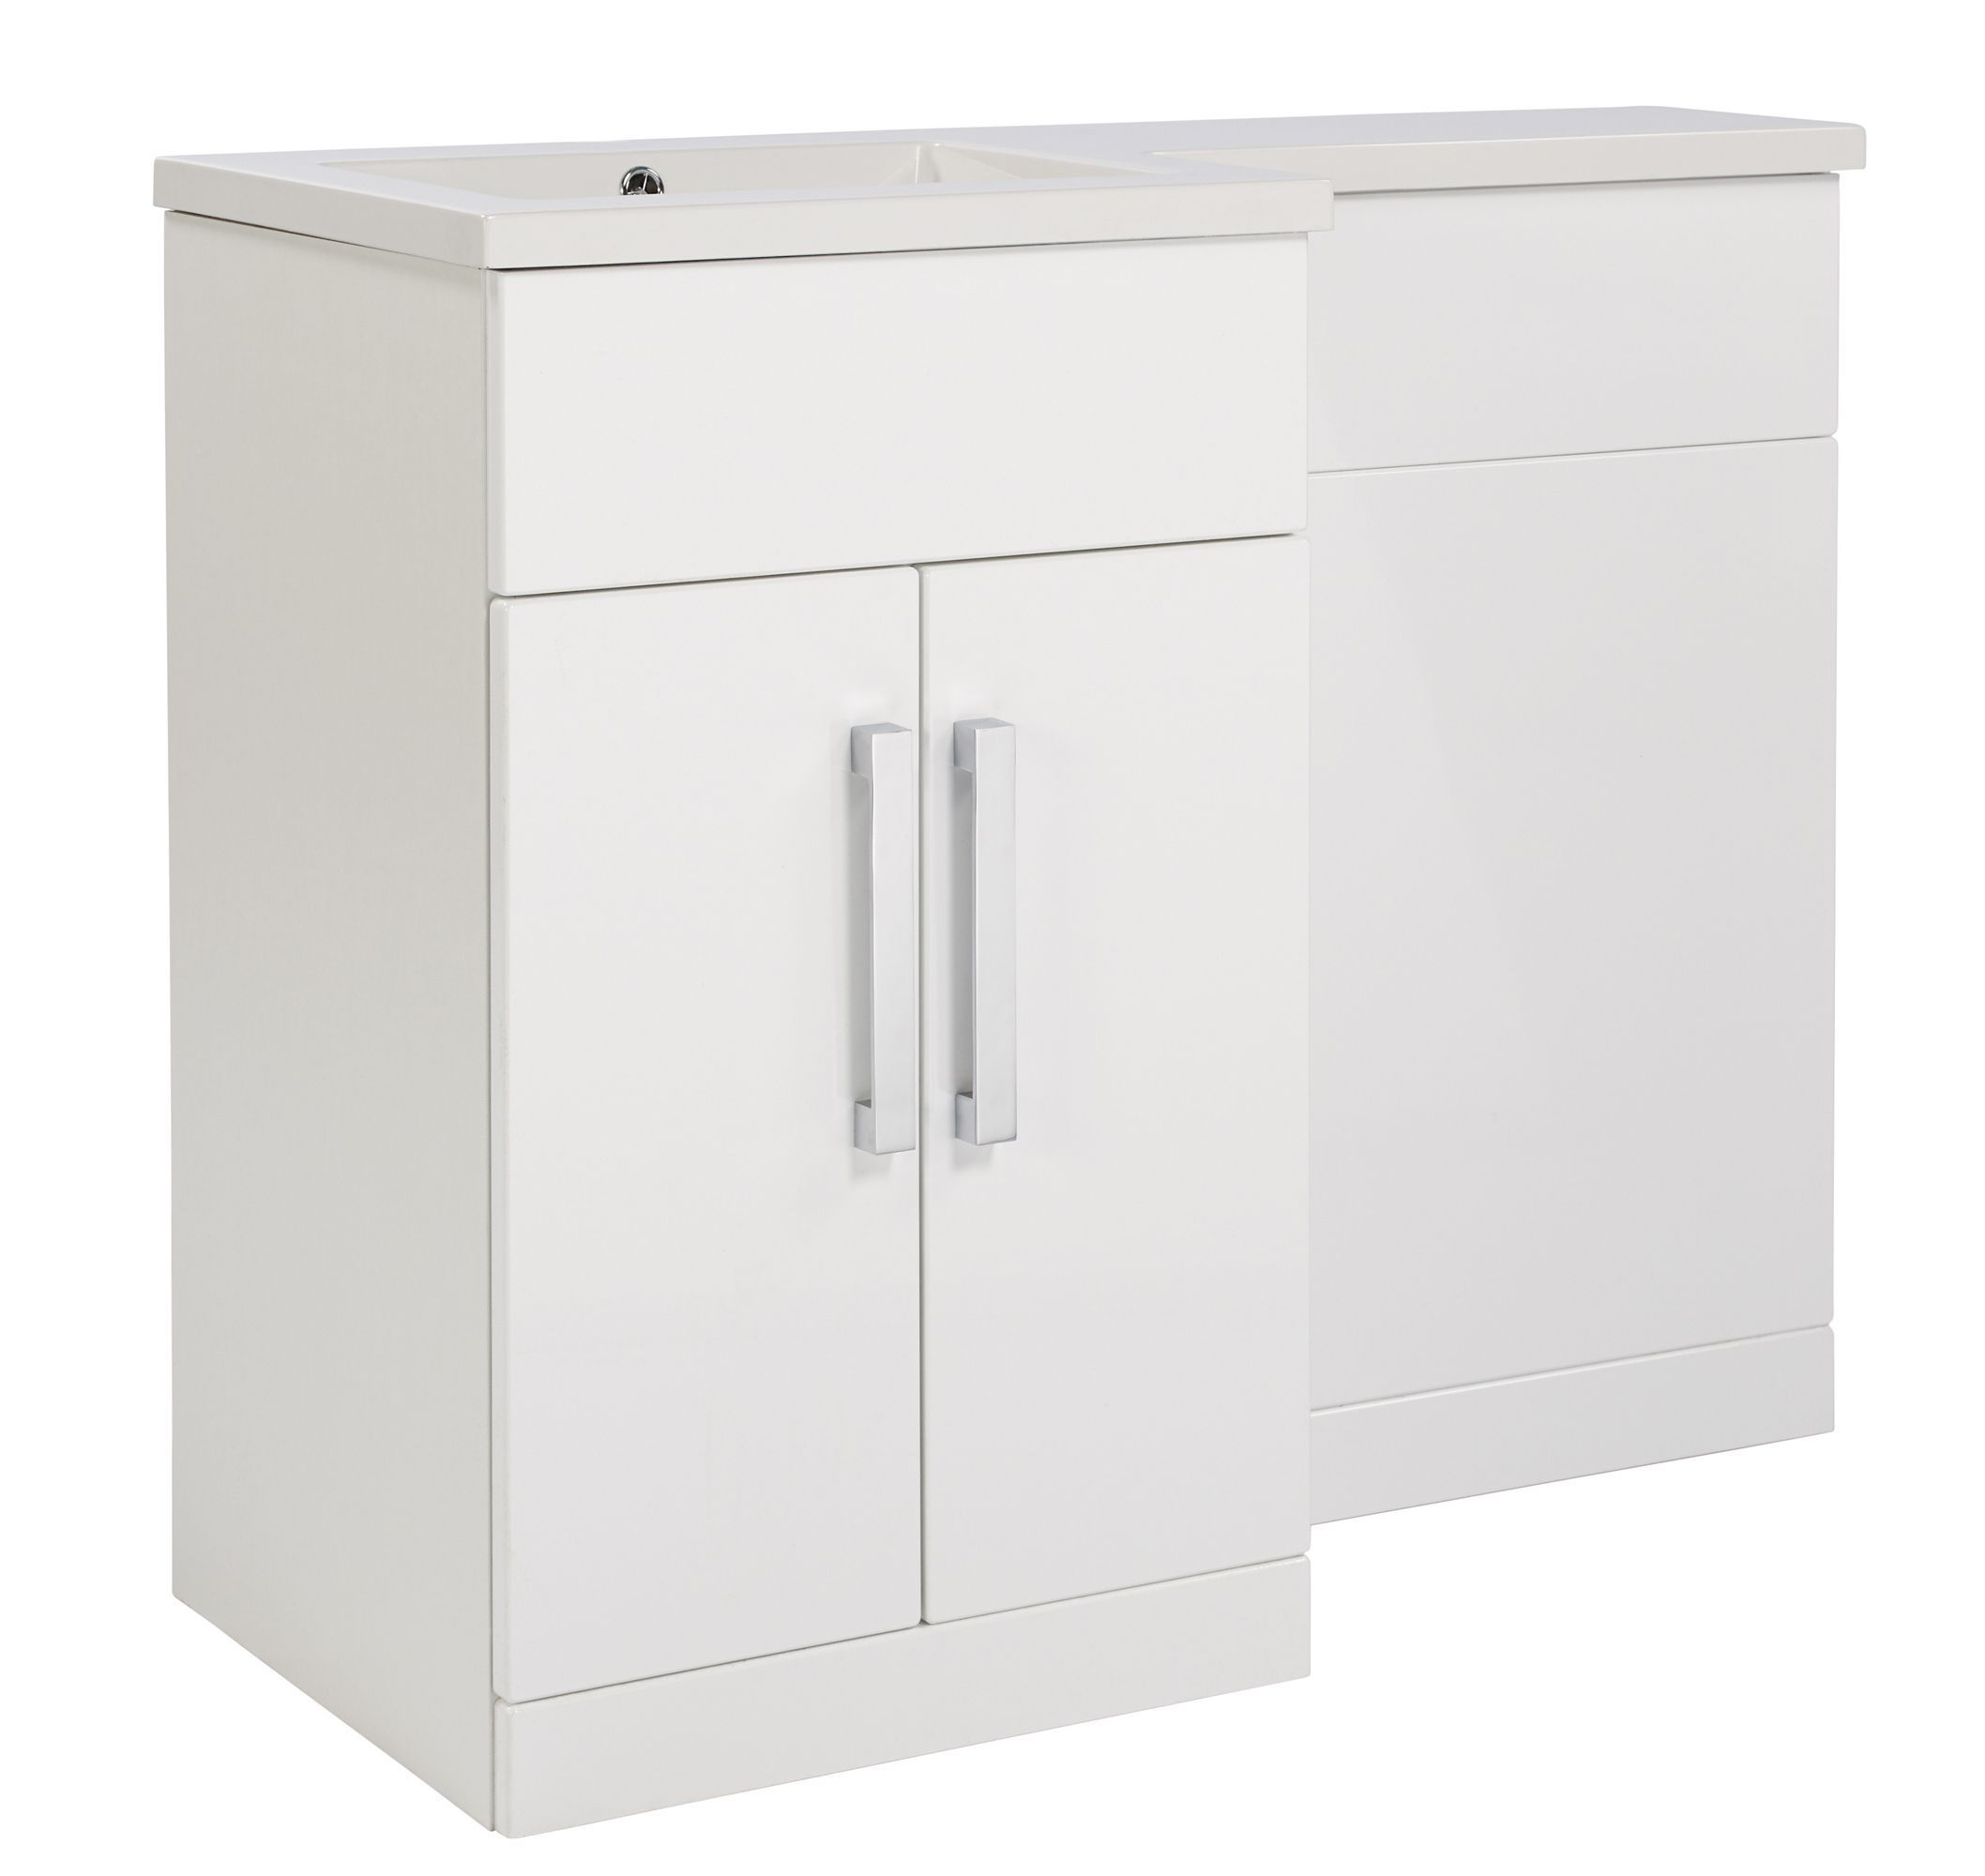 gloss gloss modular bathroom furniture collection vanity. Cooke \u0026 Lewis Ardesio Gloss White Vanity Toilet Unit | Departments DIY At B\u0026Q Modular Bathroom Furniture Collection U